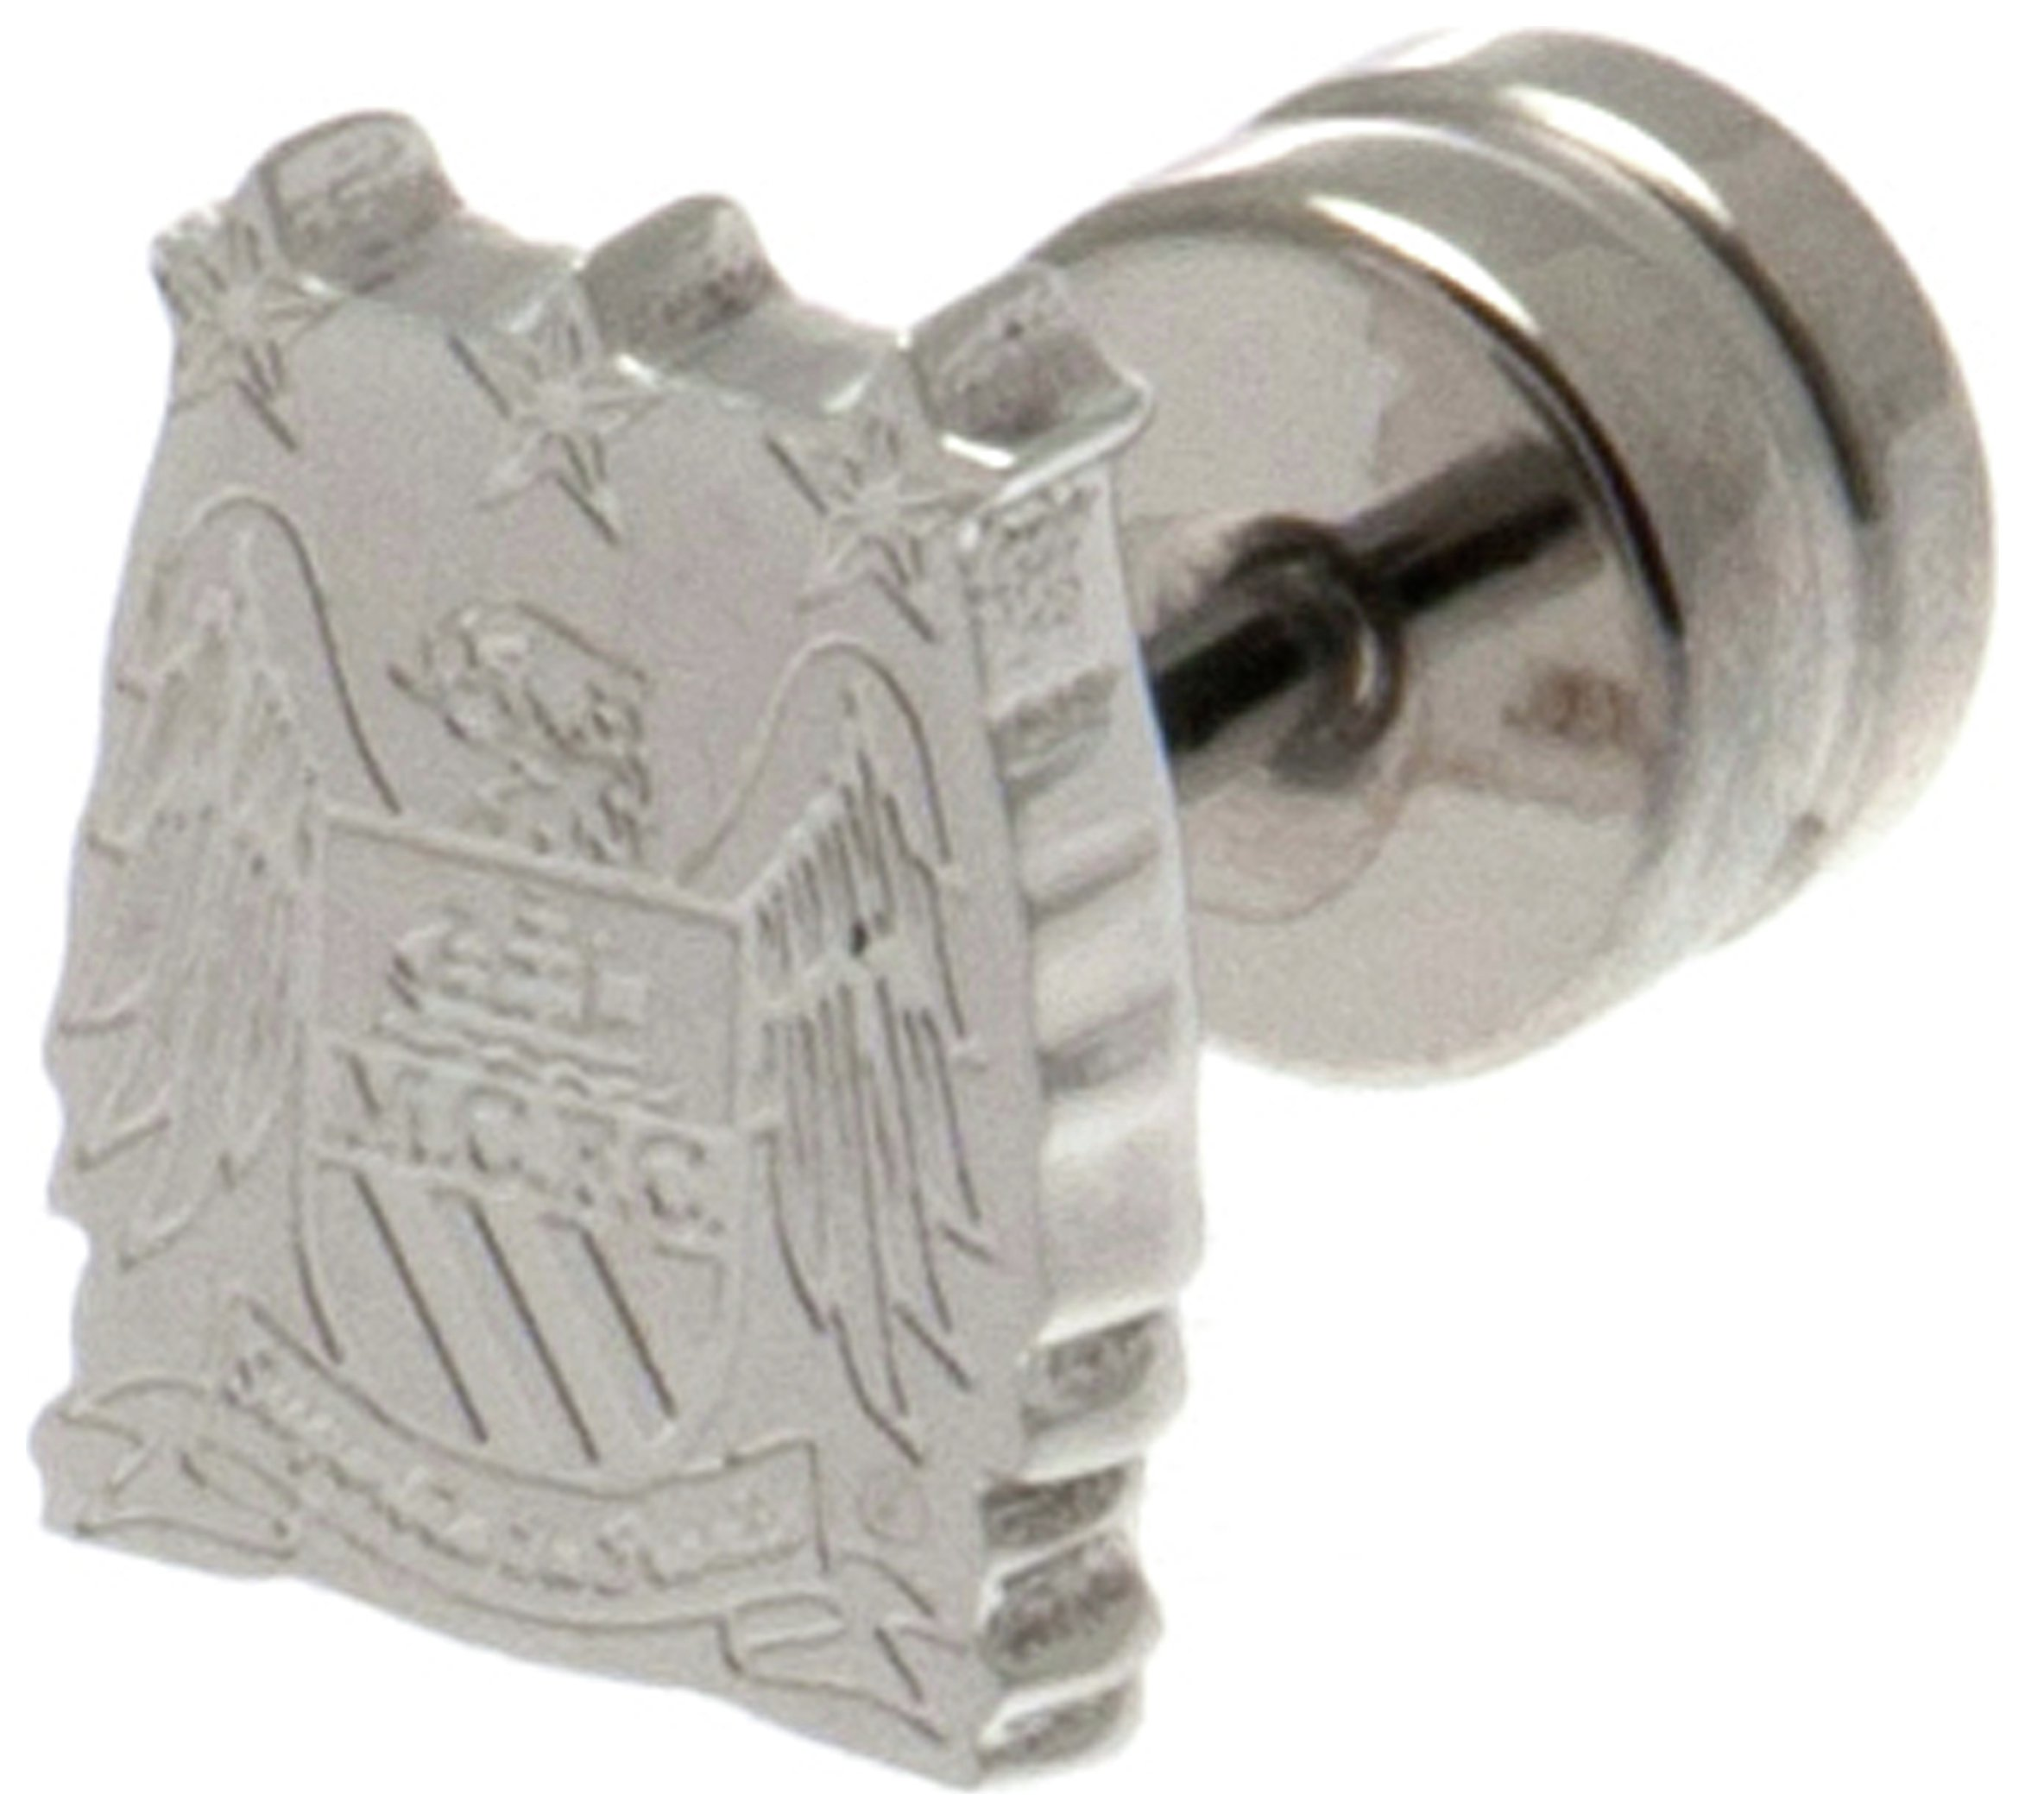 Stainless Steel Man City Crest Stud Earring. review